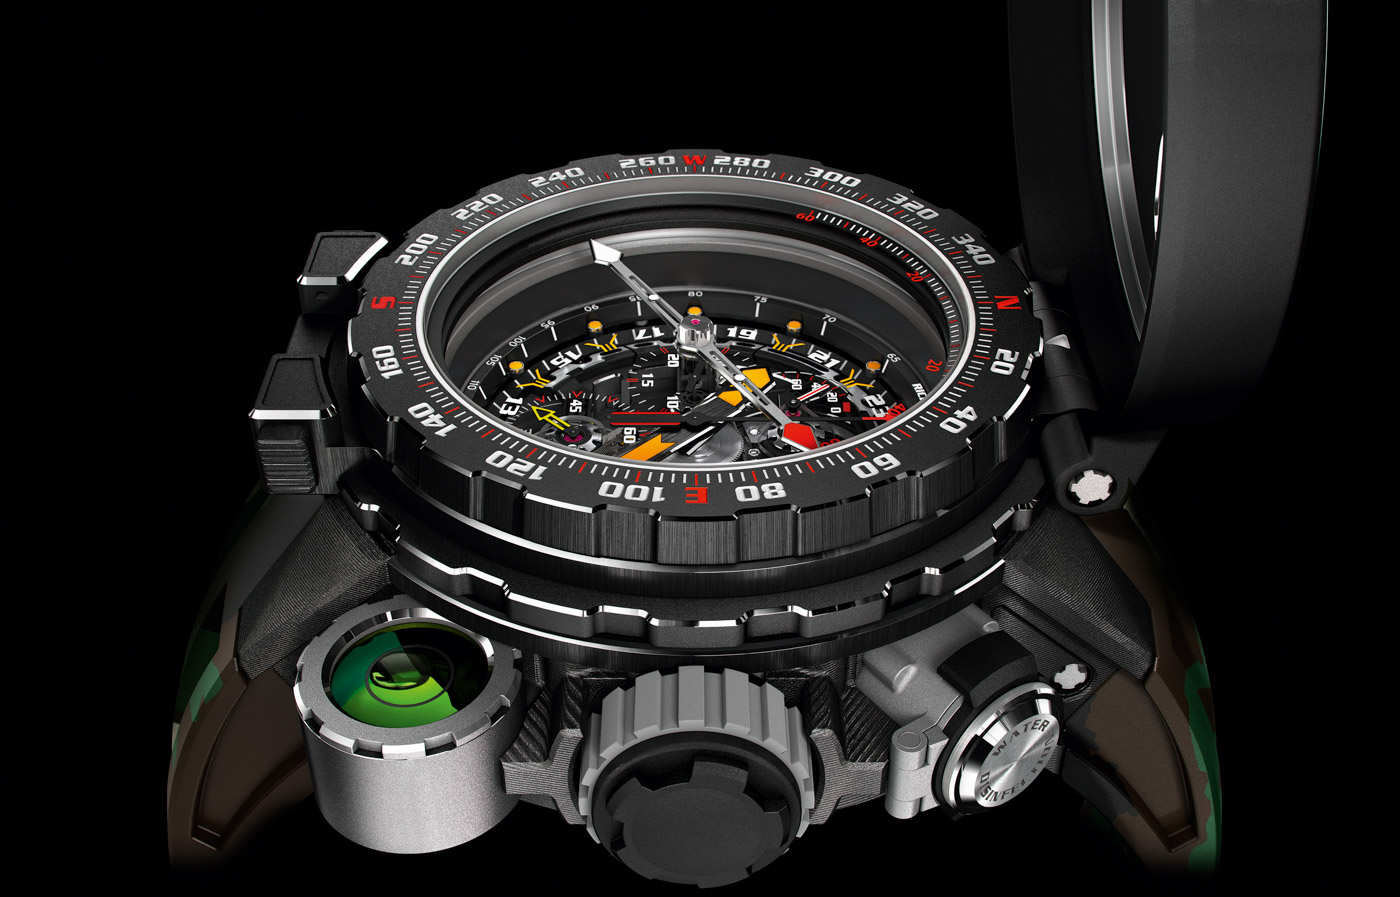 Richard mille 39 s new million dollar rm 25 01 tourbillon adventure watch for sylvester stallone for Adventure watches